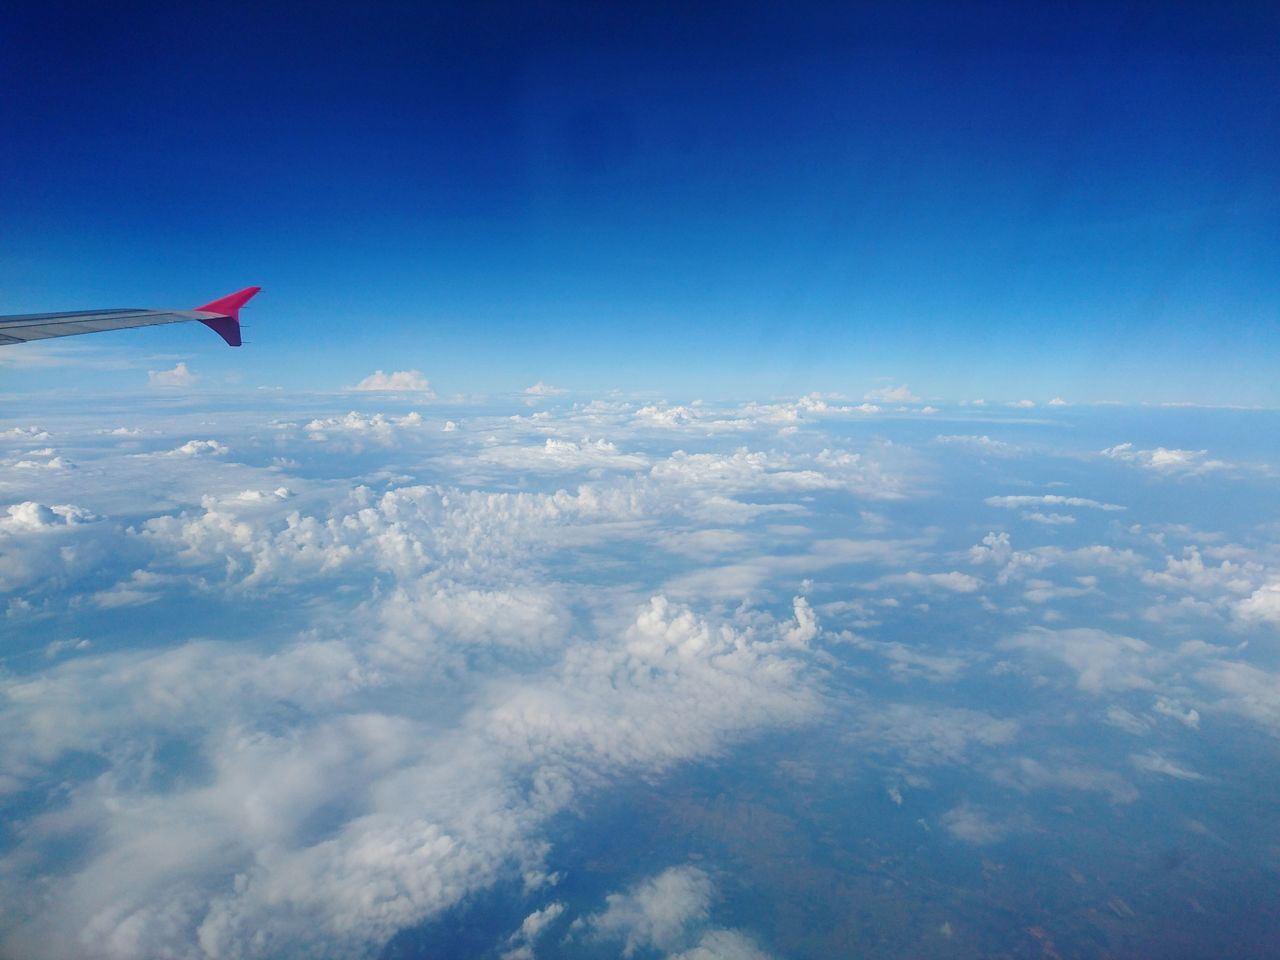 blue, sky, nature, beauty in nature, scenics, cloud - sky, no people, travel, outdoors, aerial view, flying, transportation, airplane, day, airplane wing